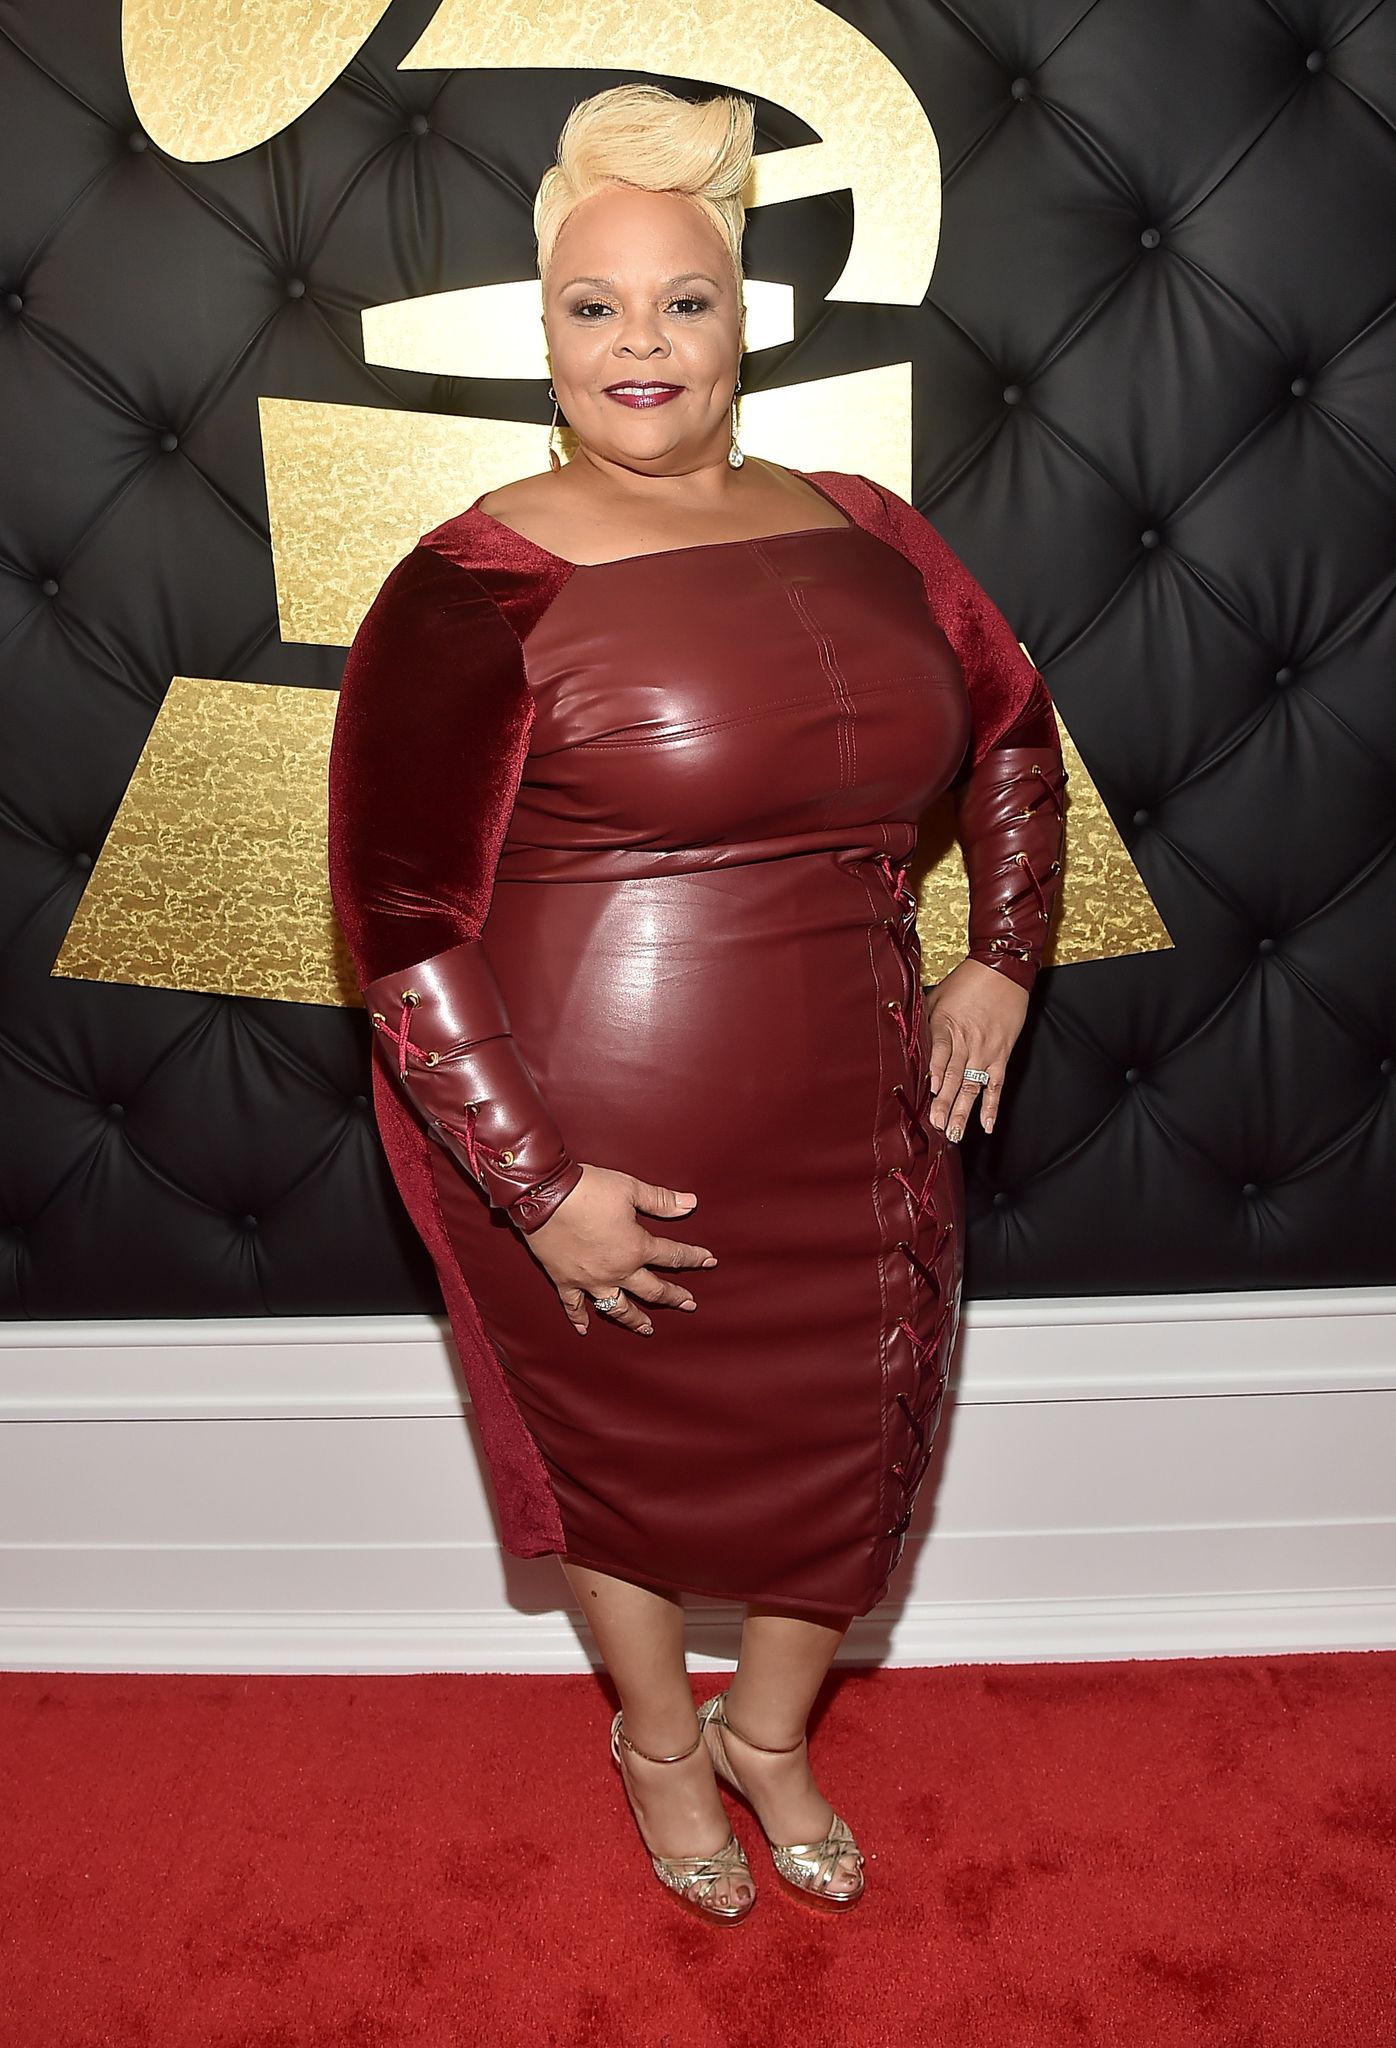 Tamela Mann at The 59th GRAMMY Awards at STAPLES Center on February 12, 2017 in Los Angeles, California. | Photo: Getty Images